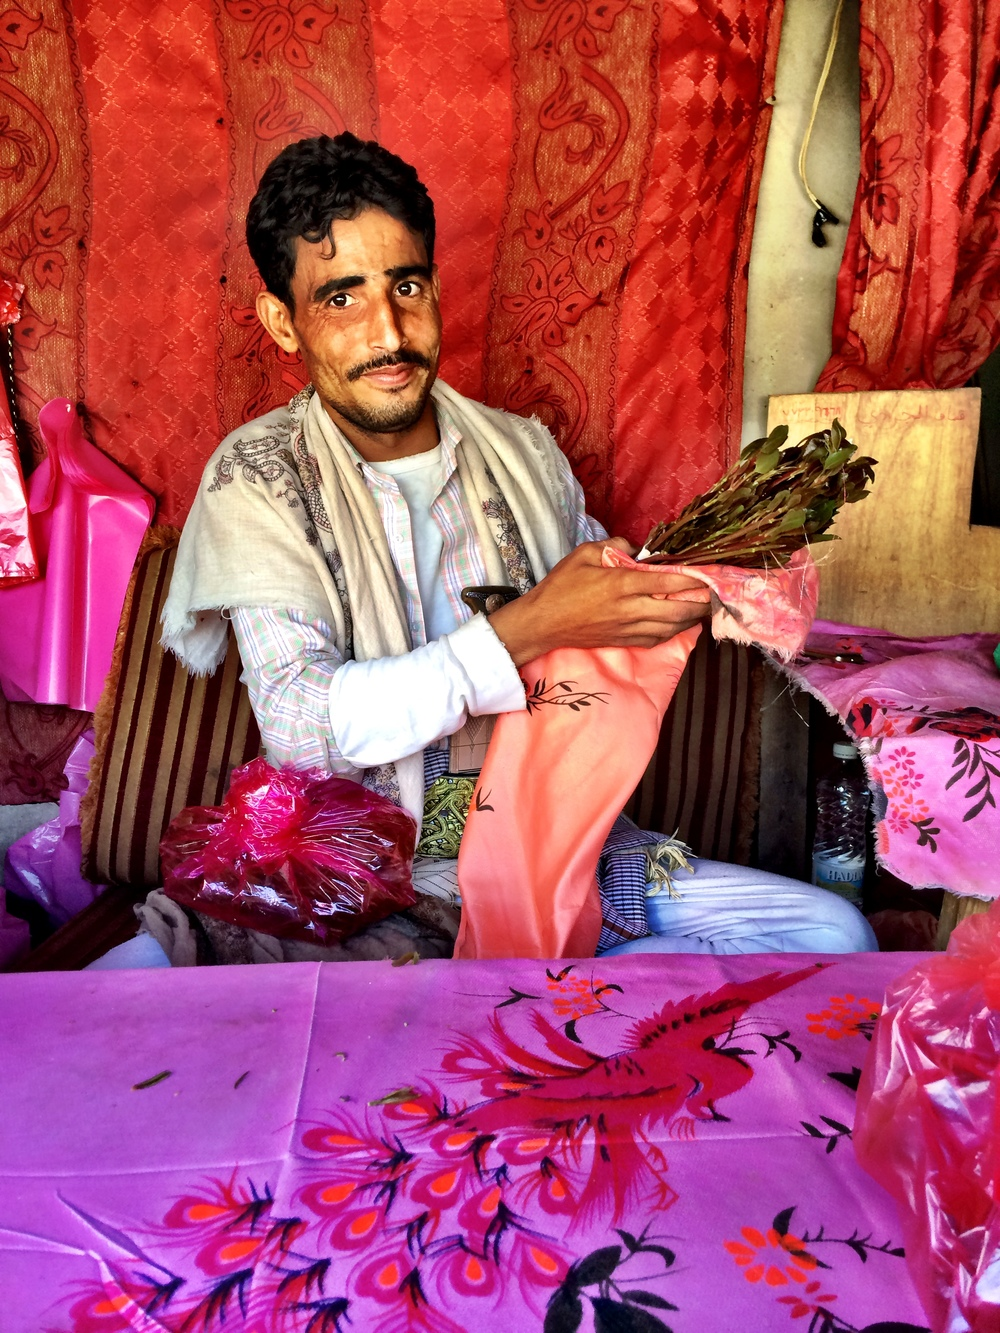 A Qat seller in Sanaa. Photo by: Lucy Kafanov